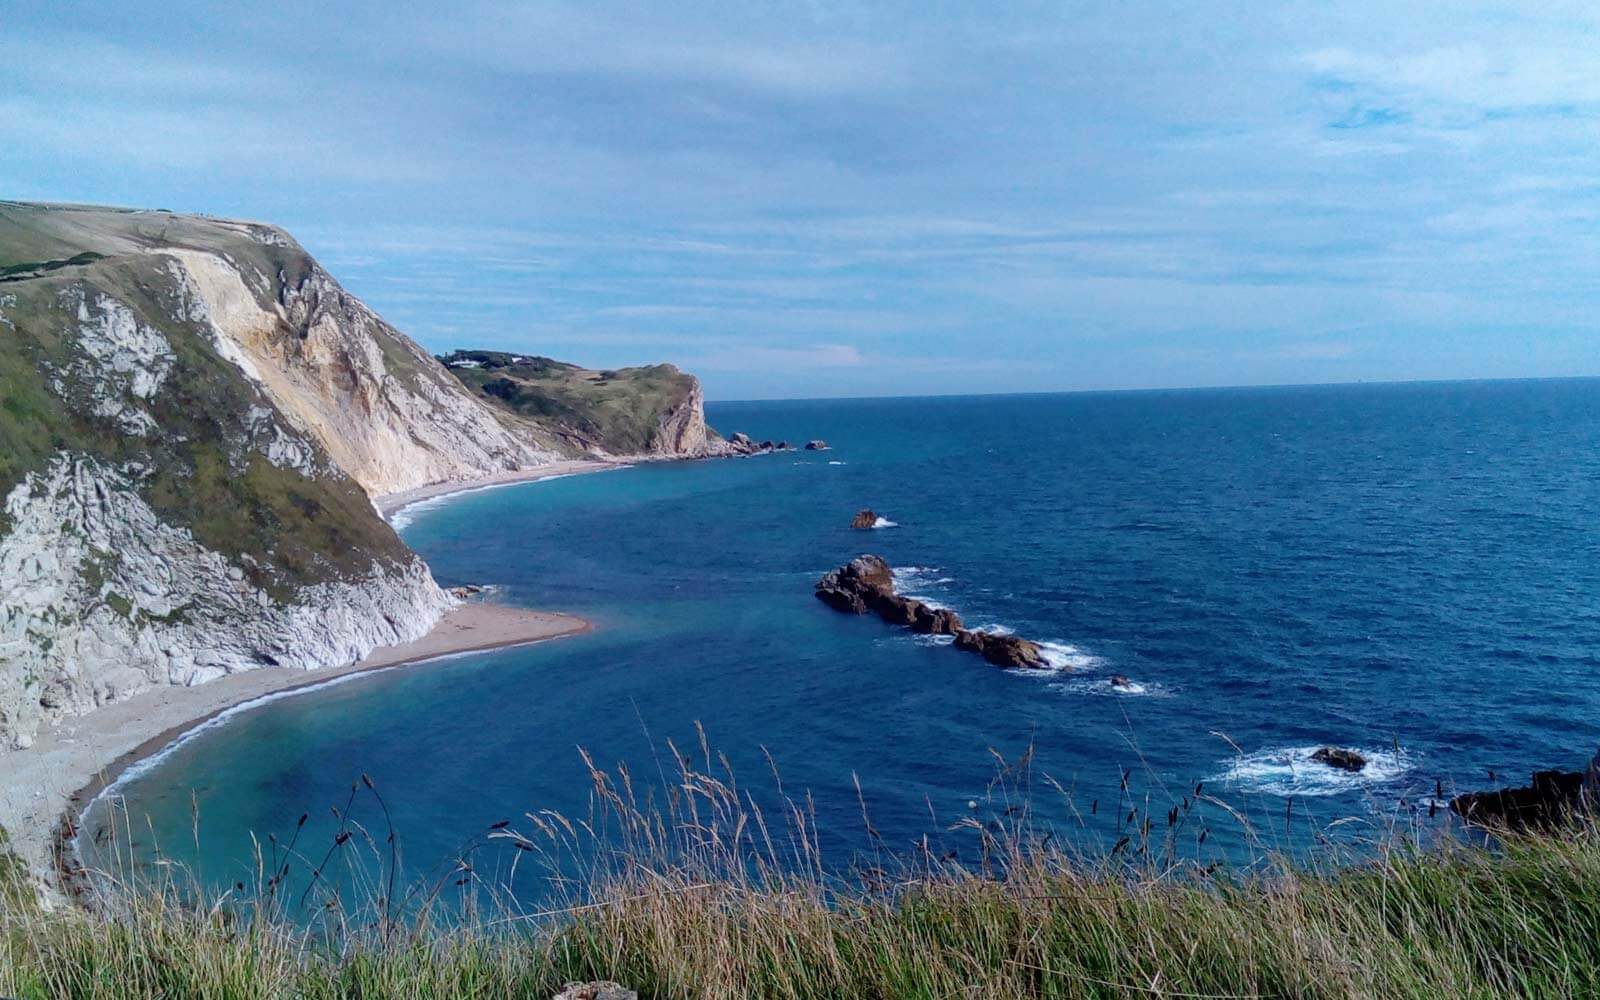 Jurassic Coast in England